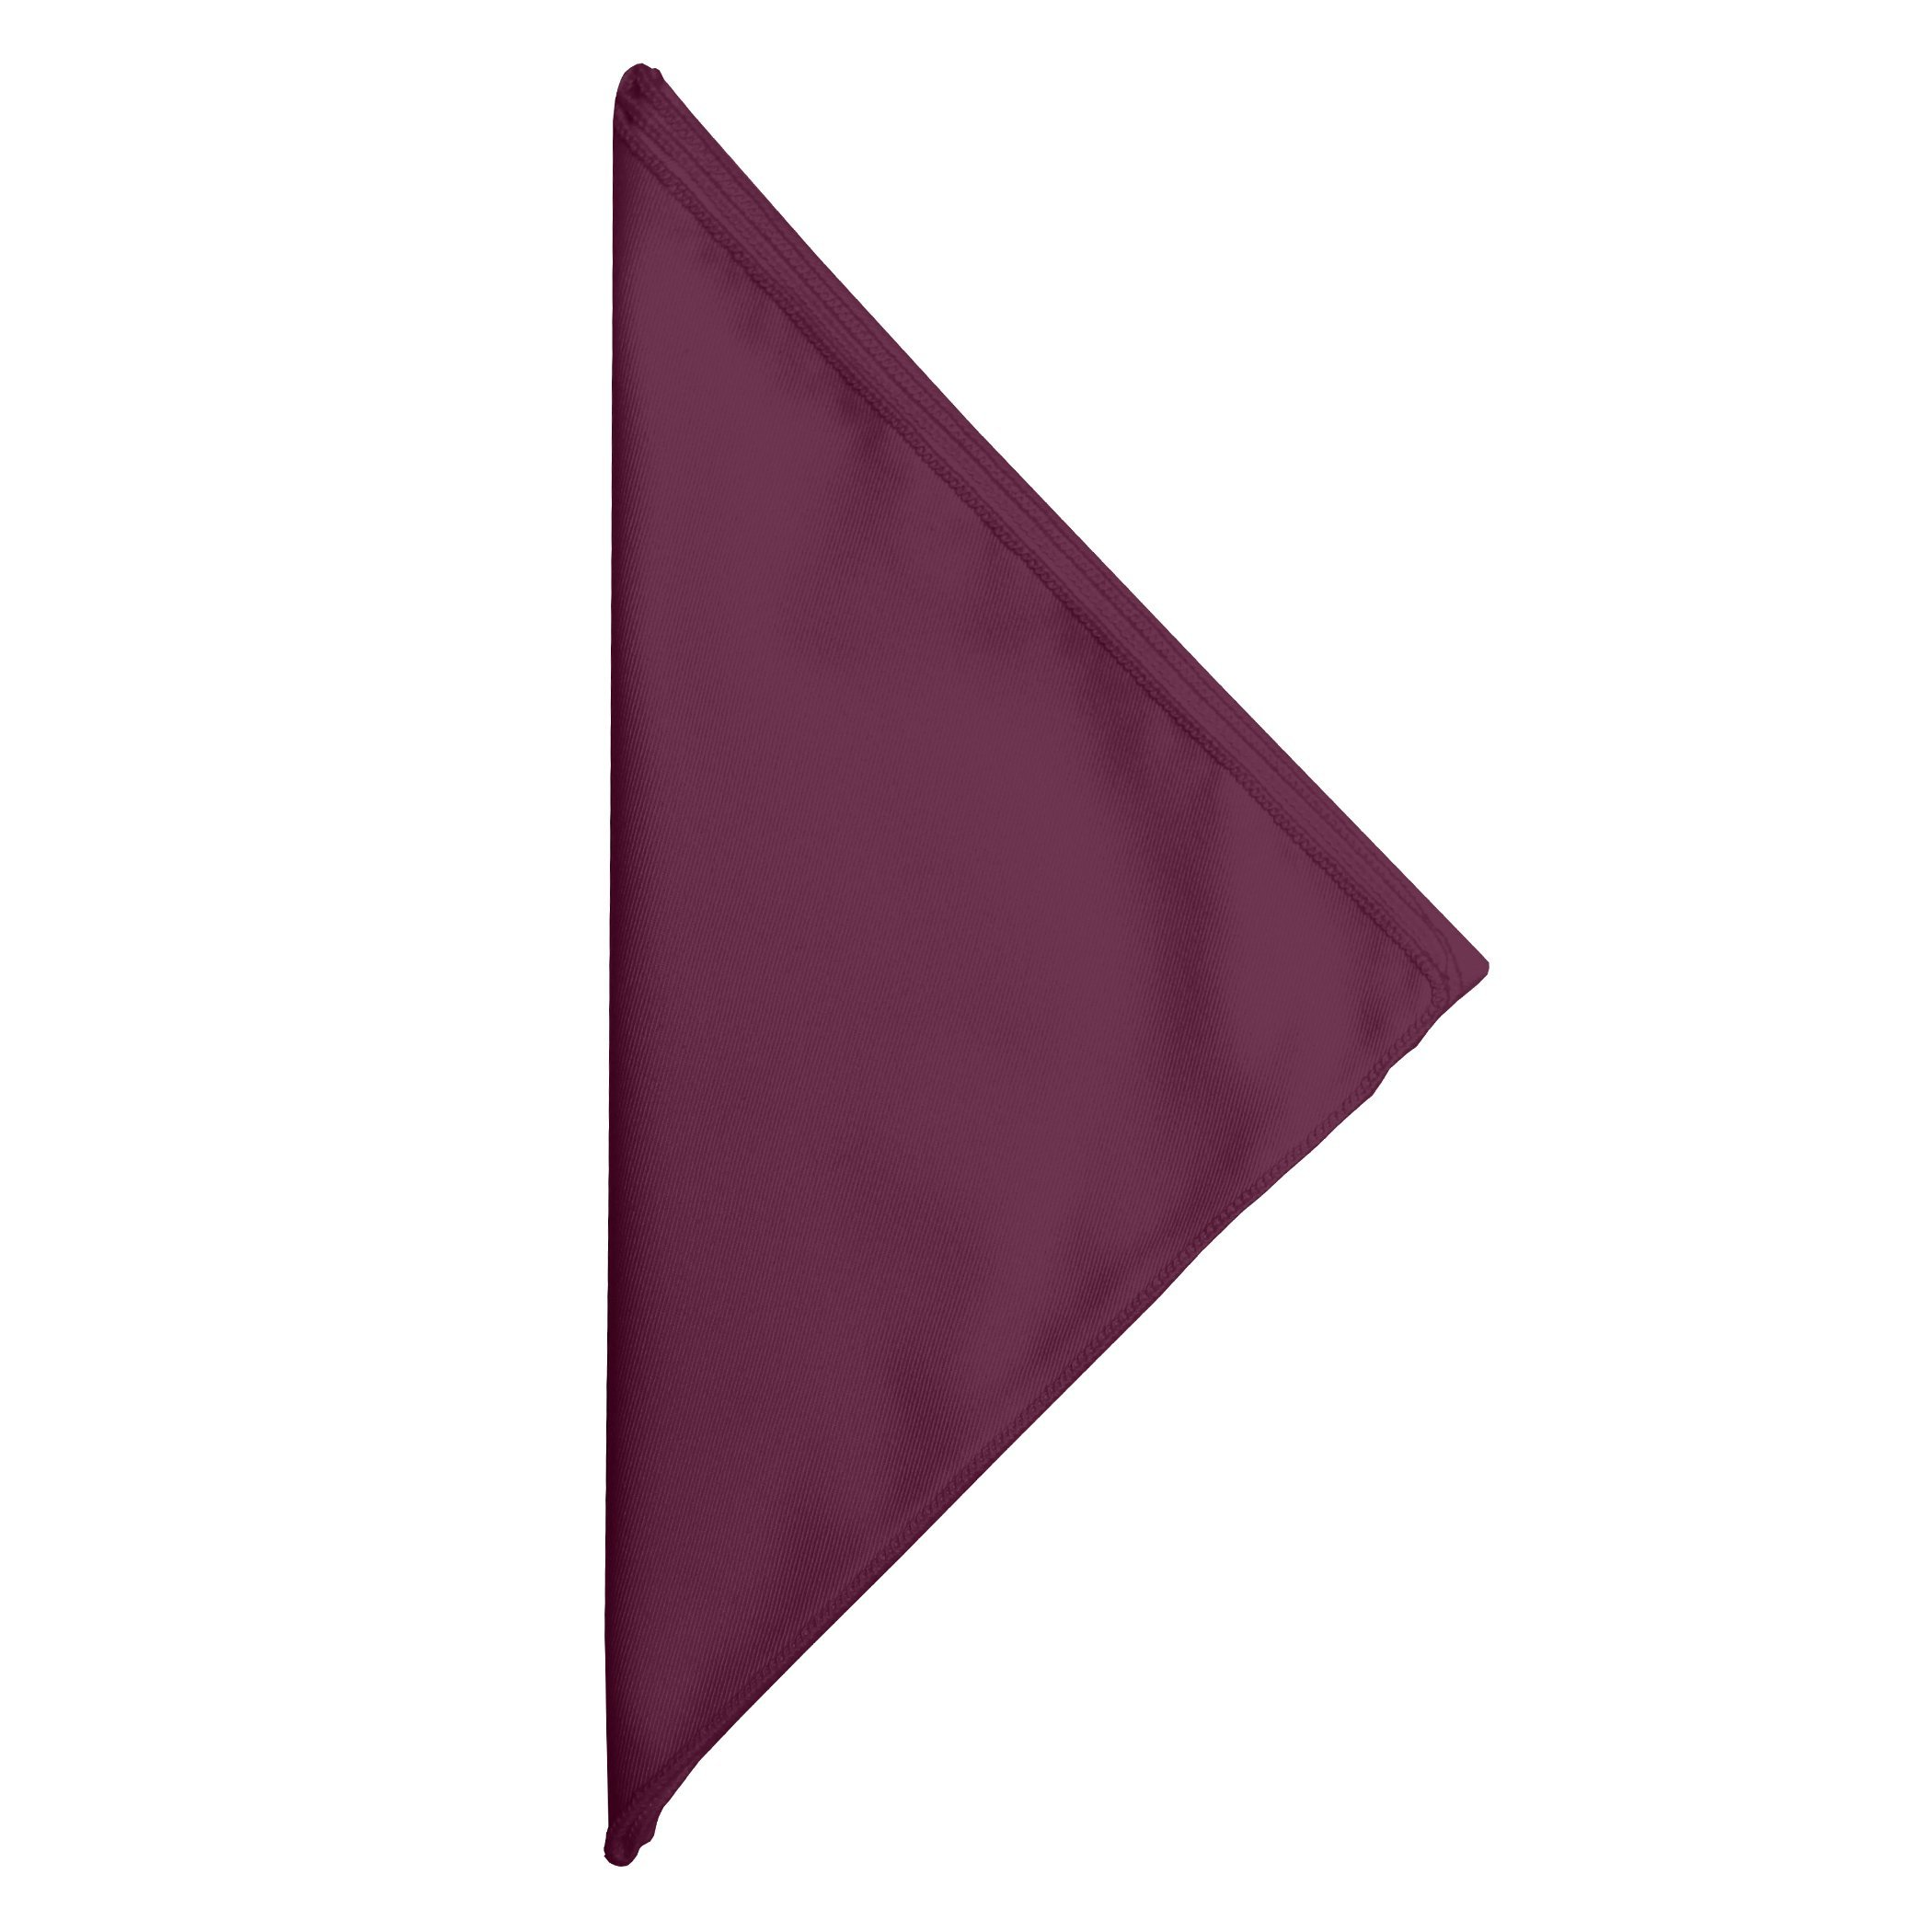 Ultimate Textile -3 Dozen- Poly-cotton Twill 10 x 10-Inch Cloth Cocktail Napkins - for Restaurant and Catering, Hotel or Home Dining use, Burgundy Dark Red